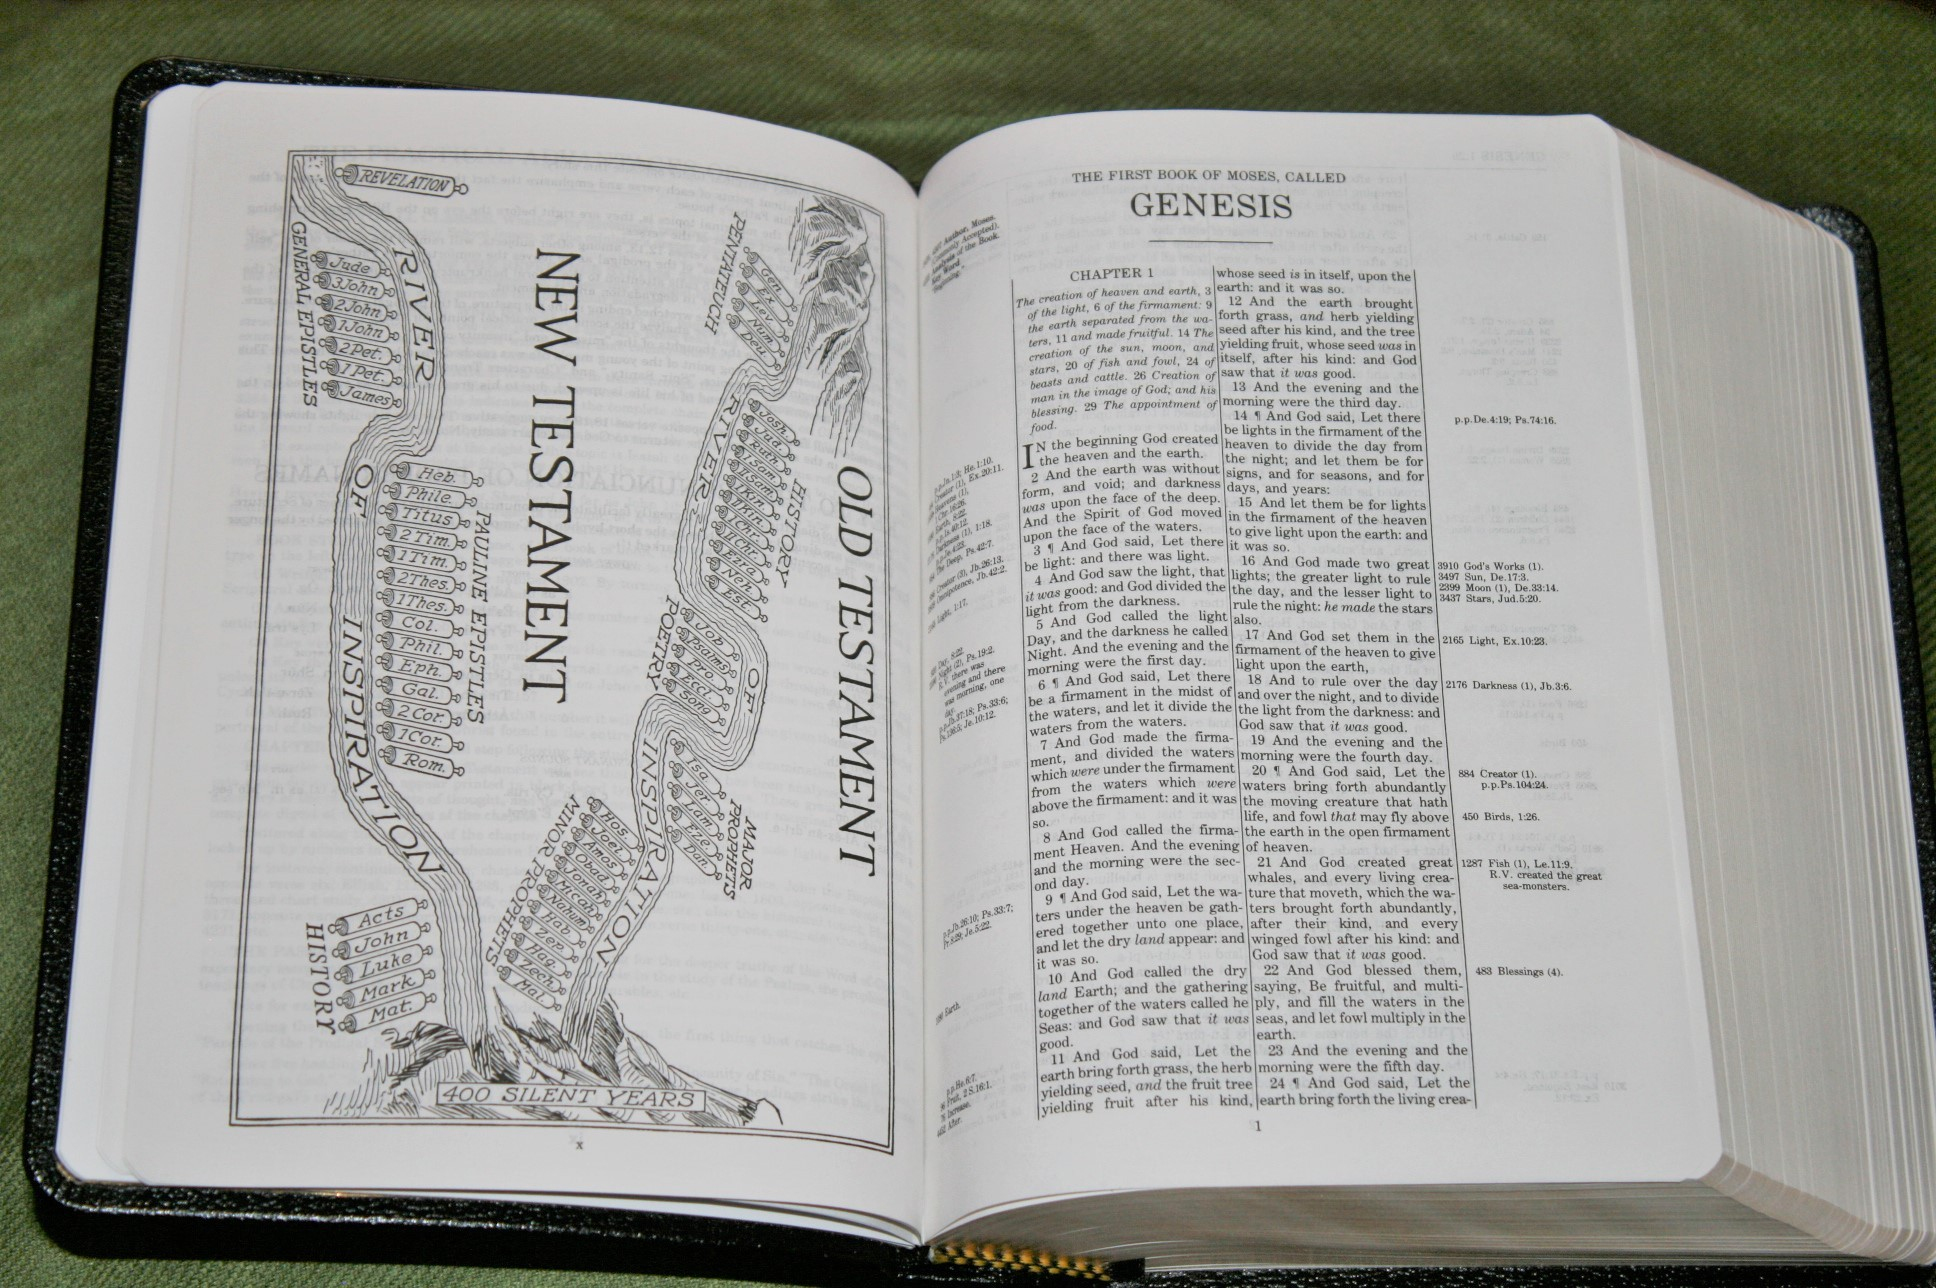 Handy Size Thompson Chain Reference Bible KJV (3)